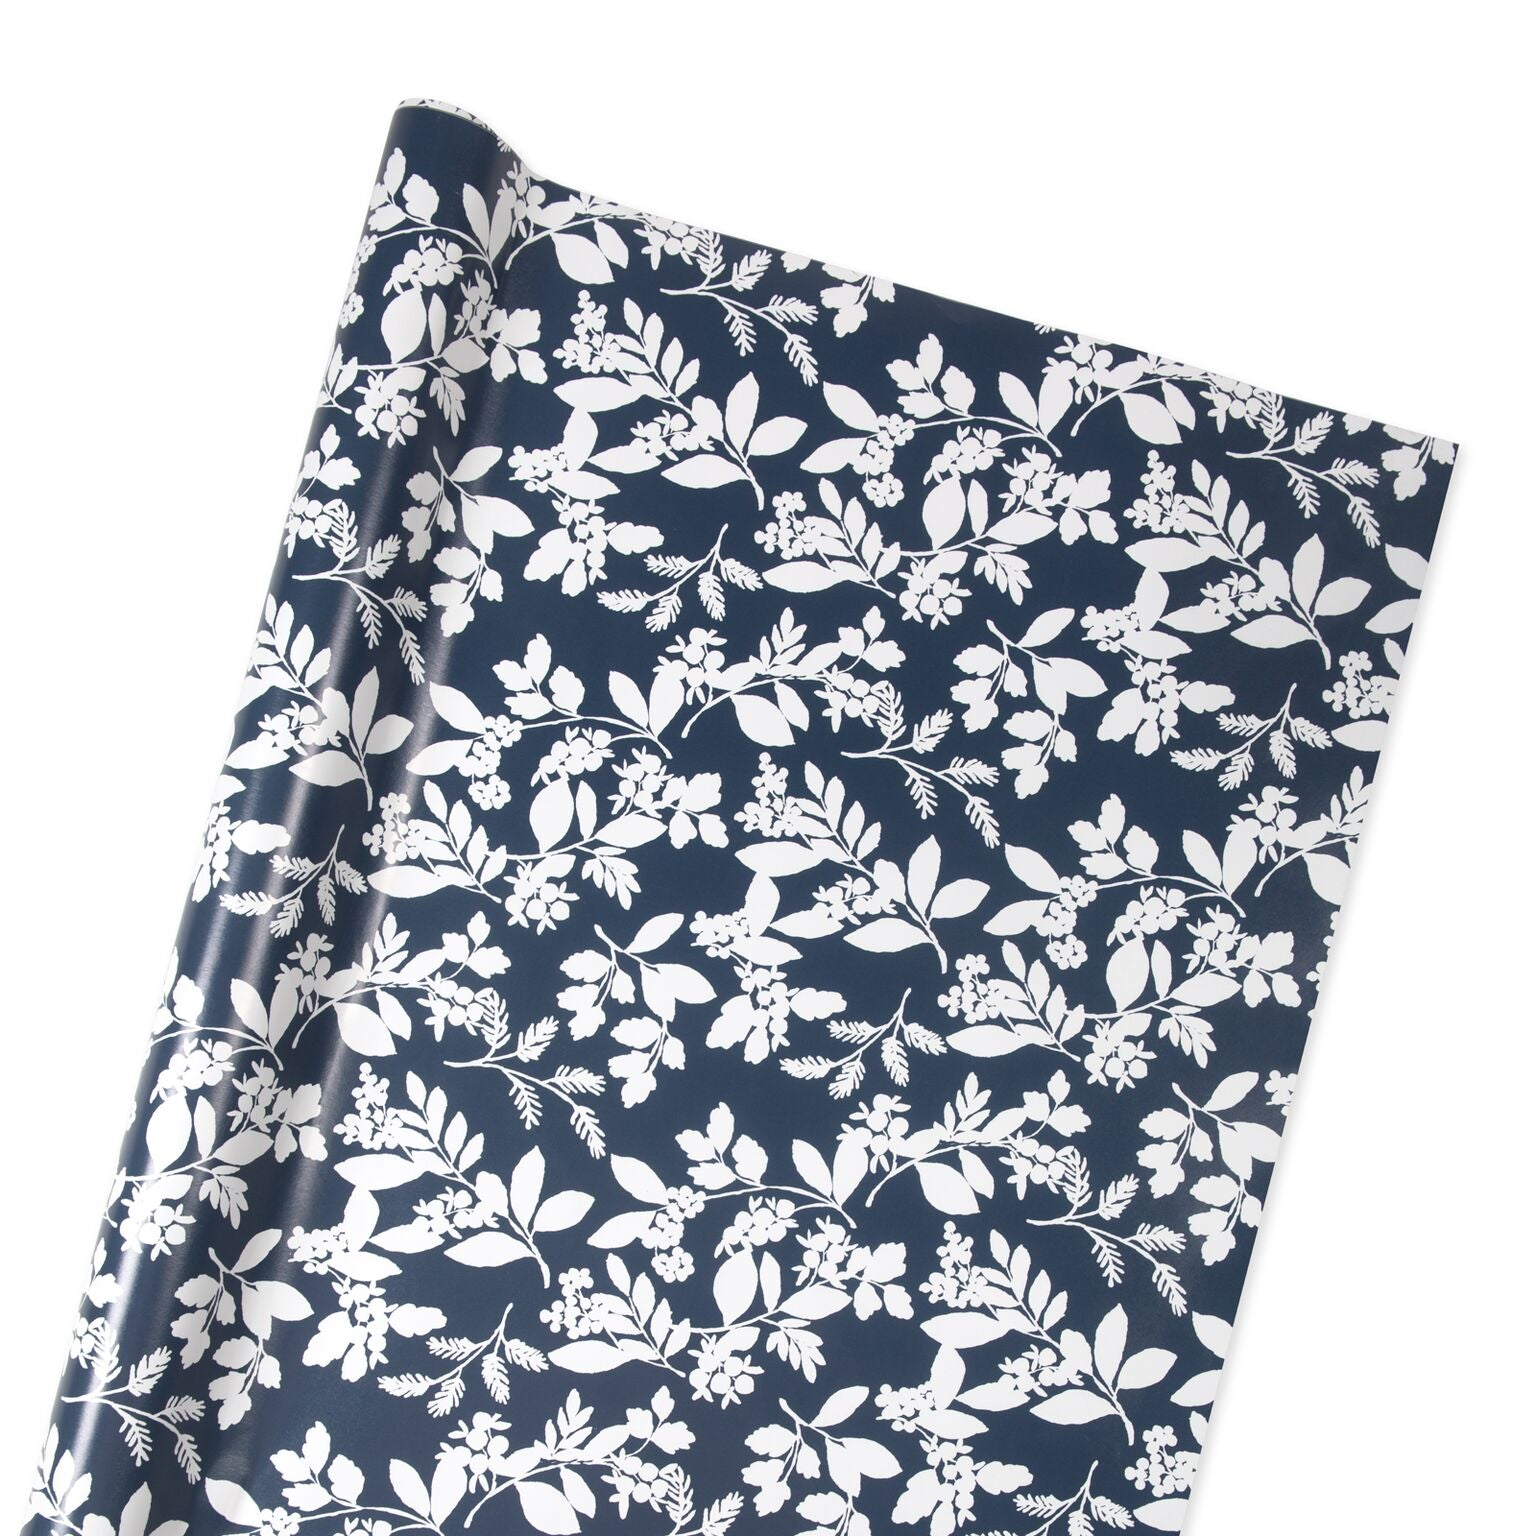 Winter Berry Wrapping Paper in Navy and White